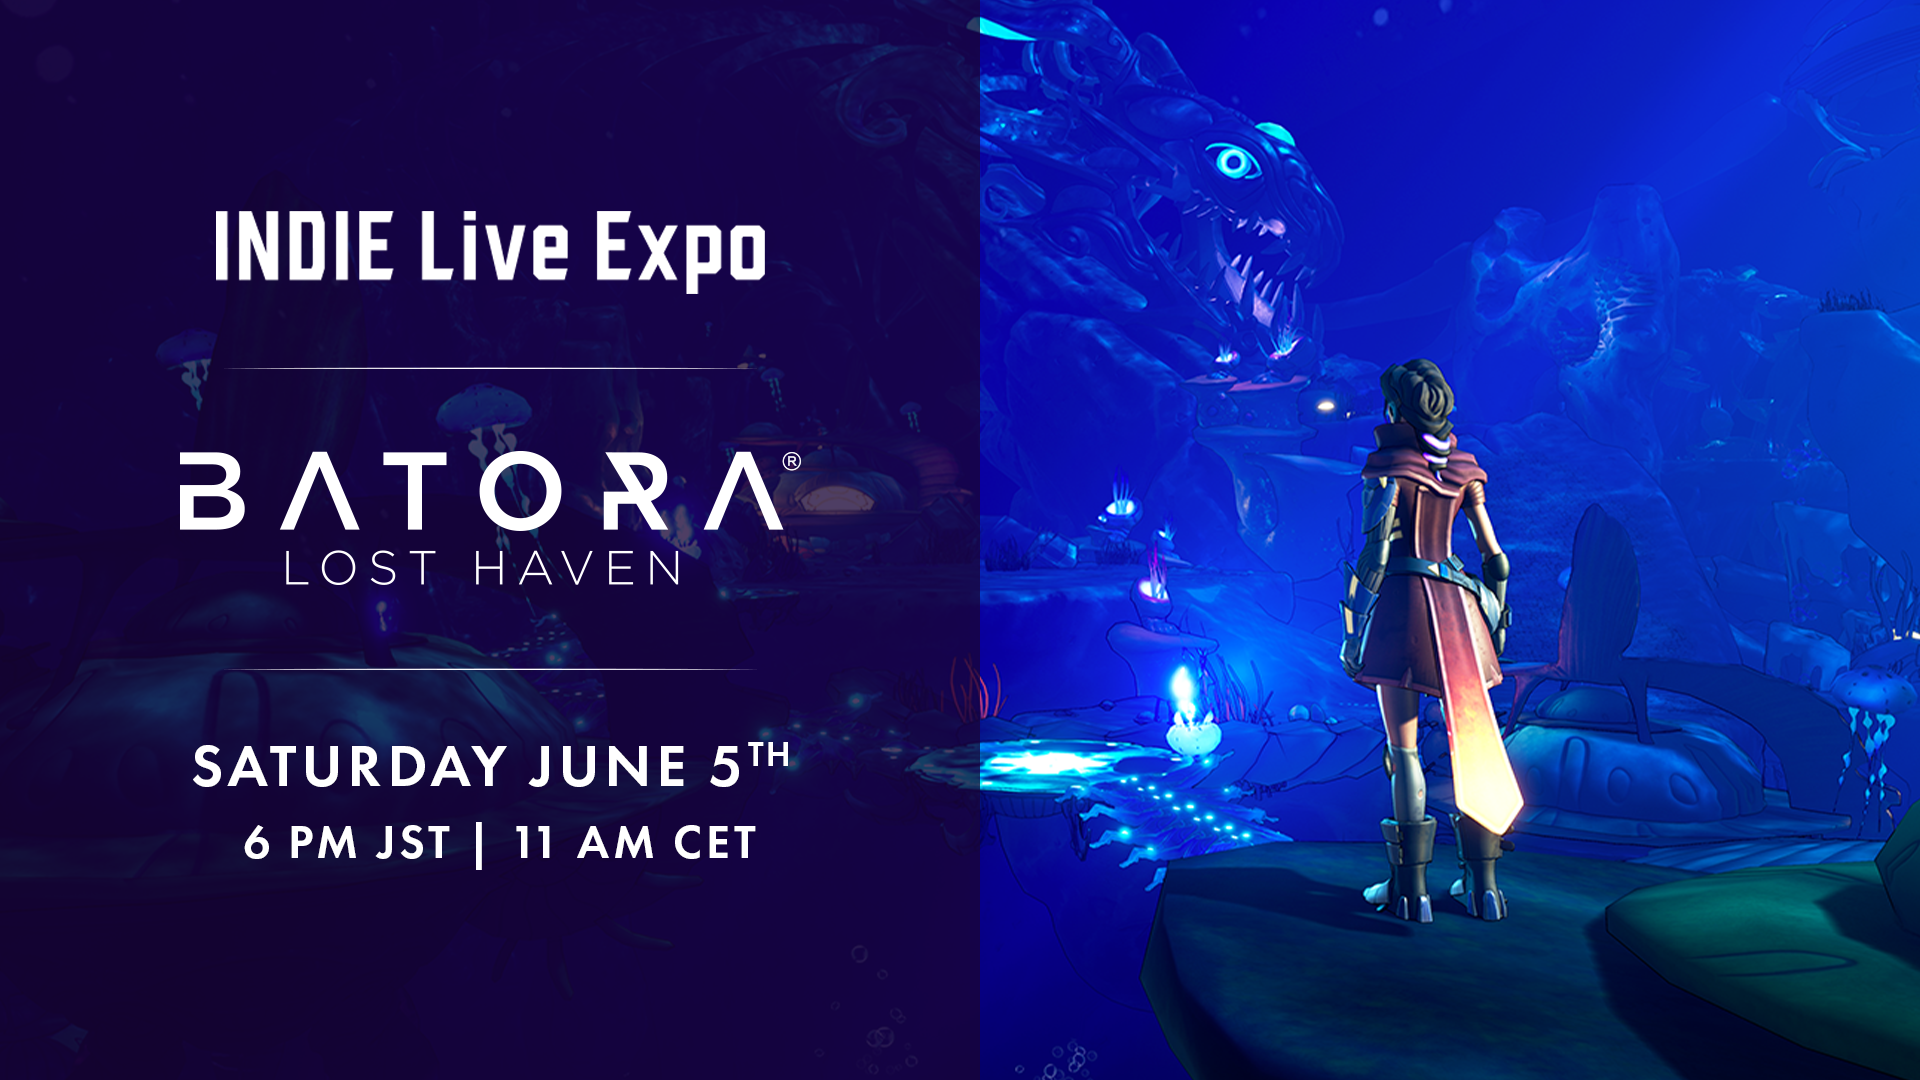 Batora: Lost Haven featured at Indie Live Expo!